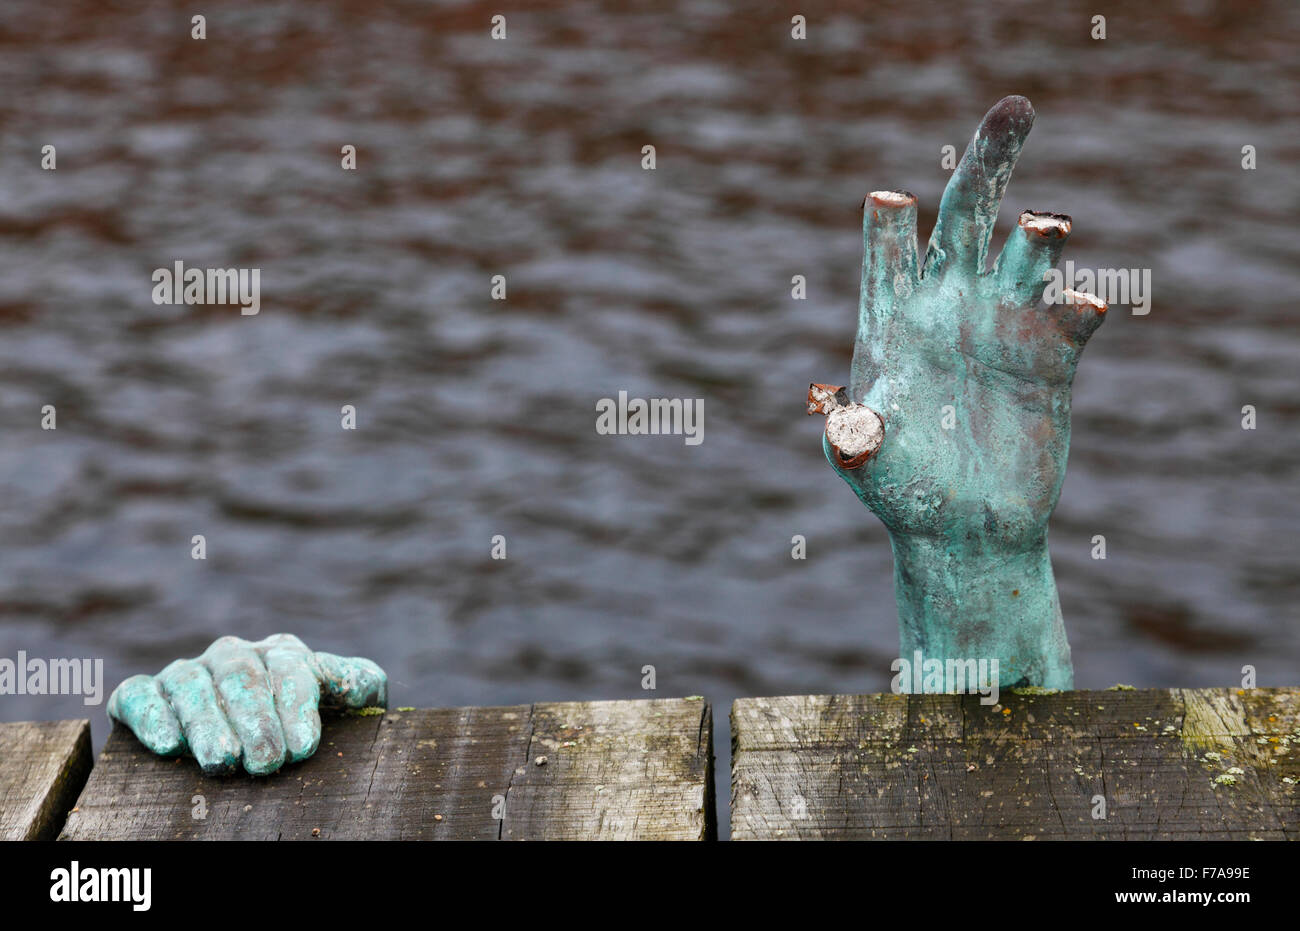 Elsinore, Denmark, 27th November, 2015. An unknown artist in Elsinore (Helsingør)  has recently placed mysterious - Stock Image